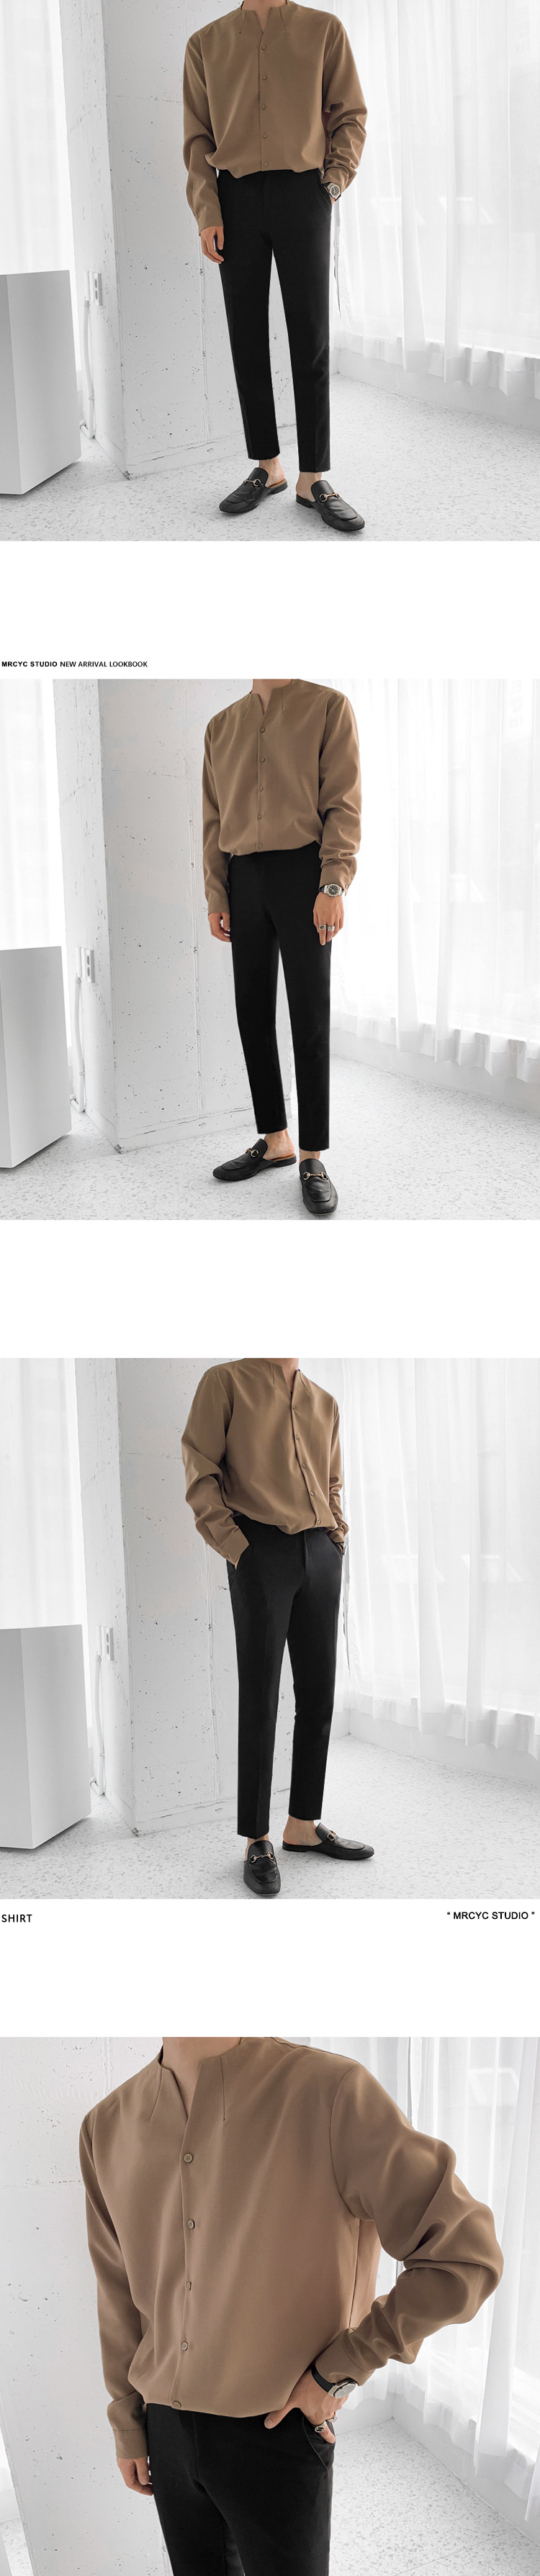 H9e95af7a75f2443ca5191978f3bffb60z IEFB /men's wear 2020 autumn casual stand collar solid color shirt for male Personality Trend Handsome Long Sleeve s 9Y899